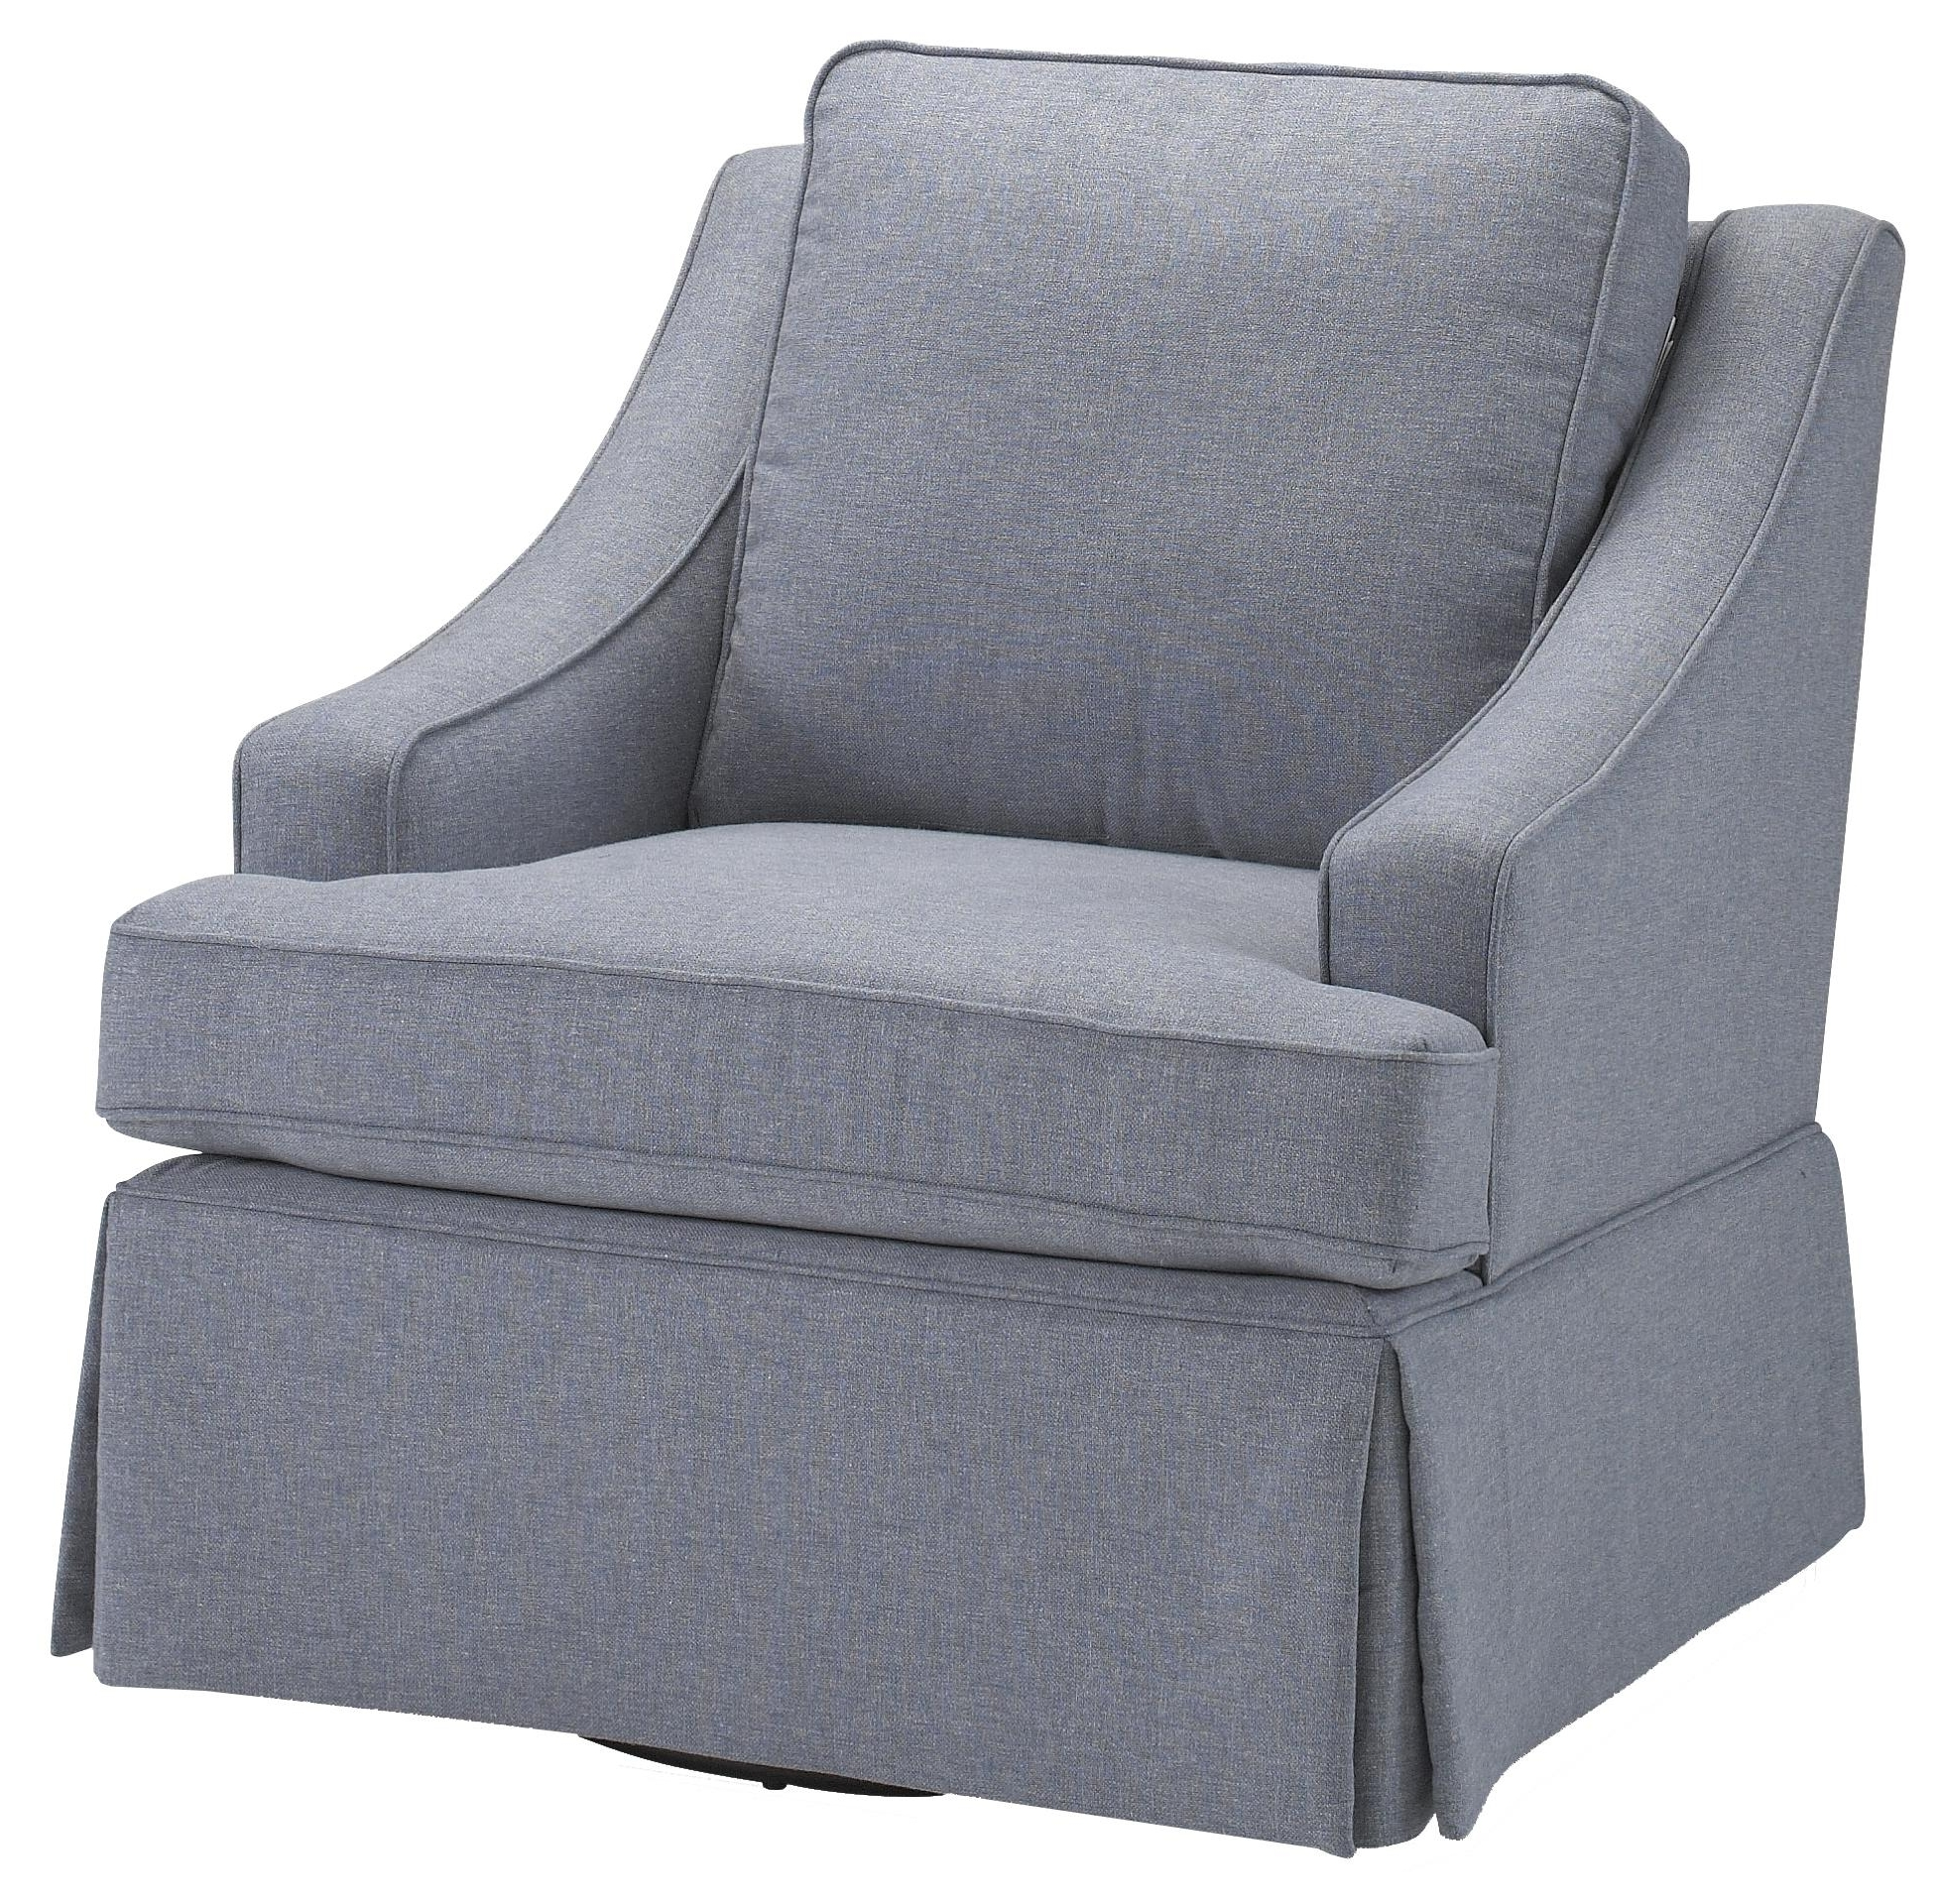 Famous Best Home Furnishings Swivel Glide Chairs Contemporary Ayla Swivel Throughout Swivel Rocking Chairs (View 2 of 15)